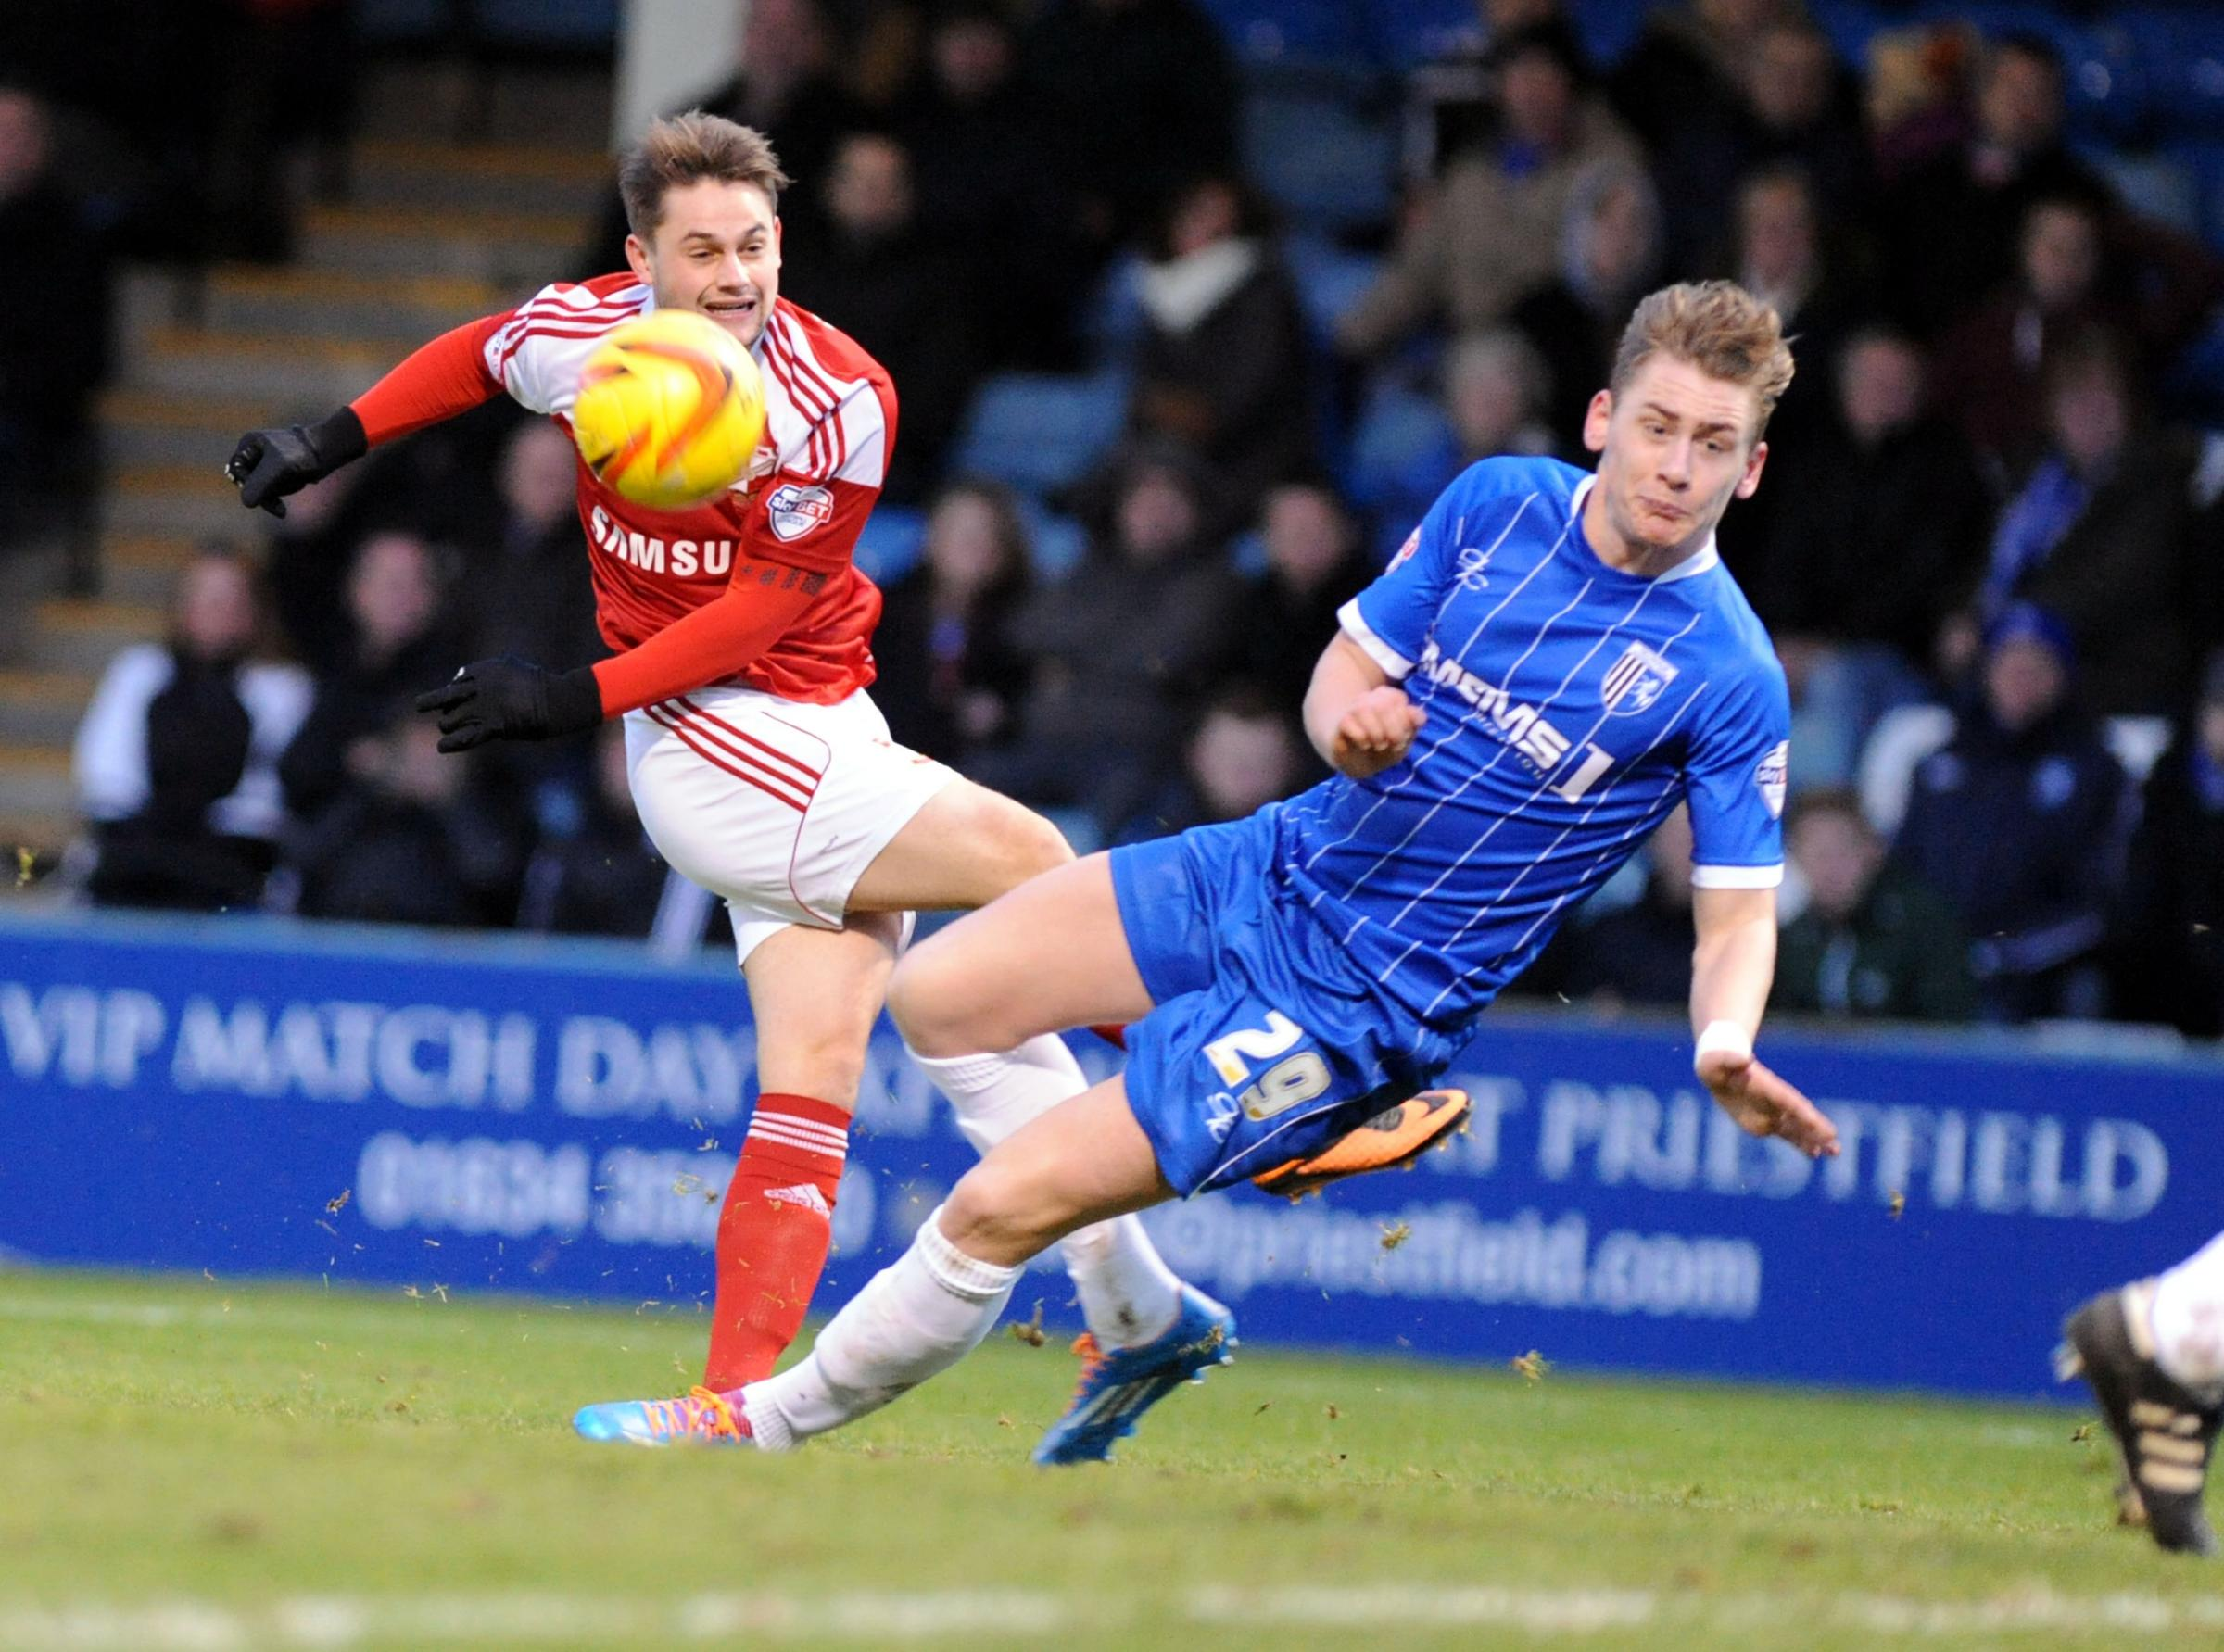 GILLINGHAM 2 SWINDON TOWN 0: Groundhog day for Robins